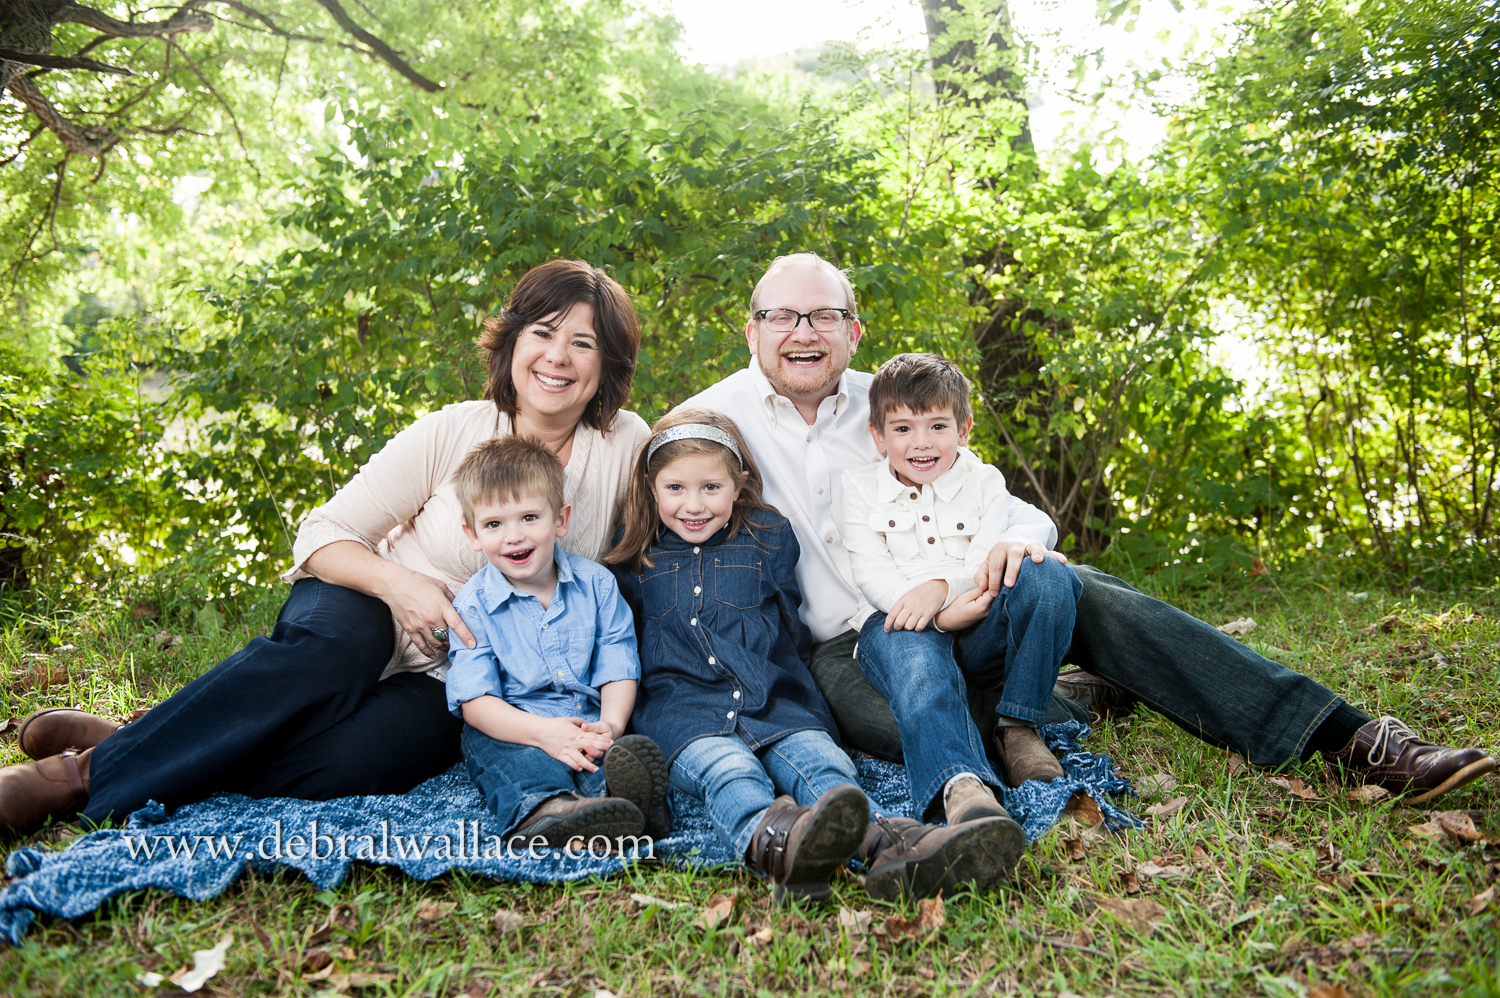 Genesee valley park family mini sessions-